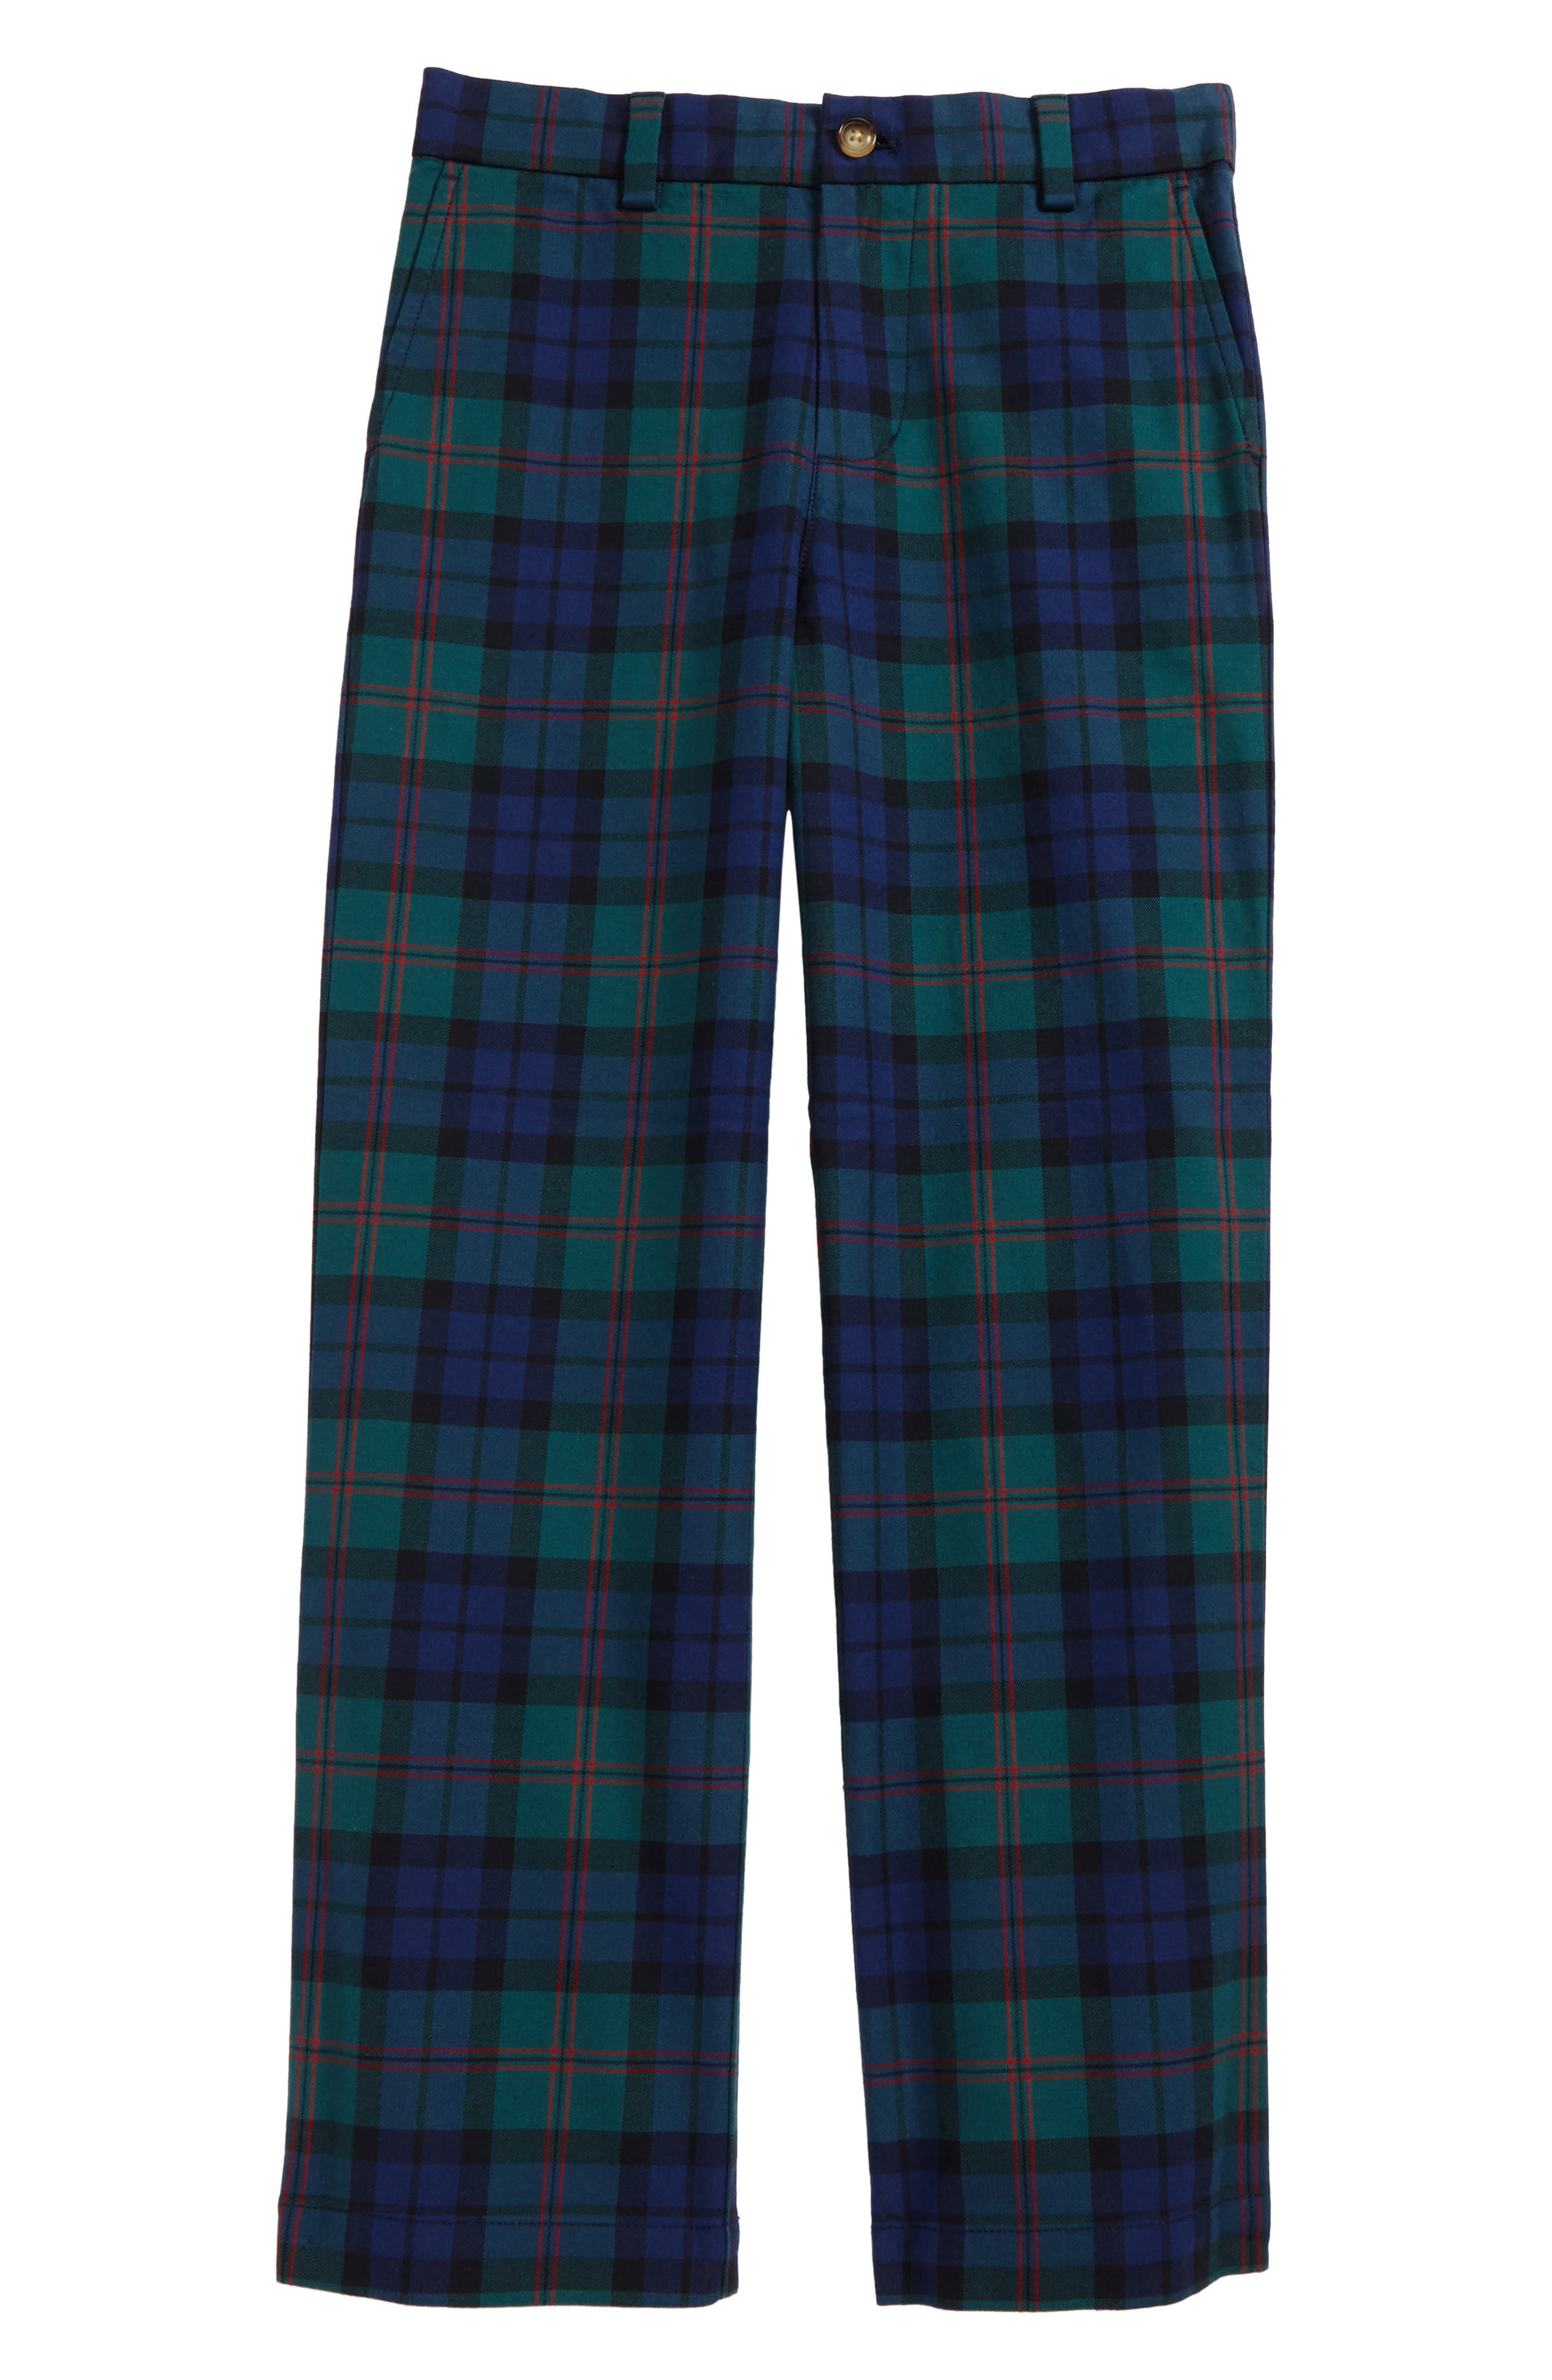 Holiday Black Watch Plaid Pants,                         Main,                         color, Charleston Green